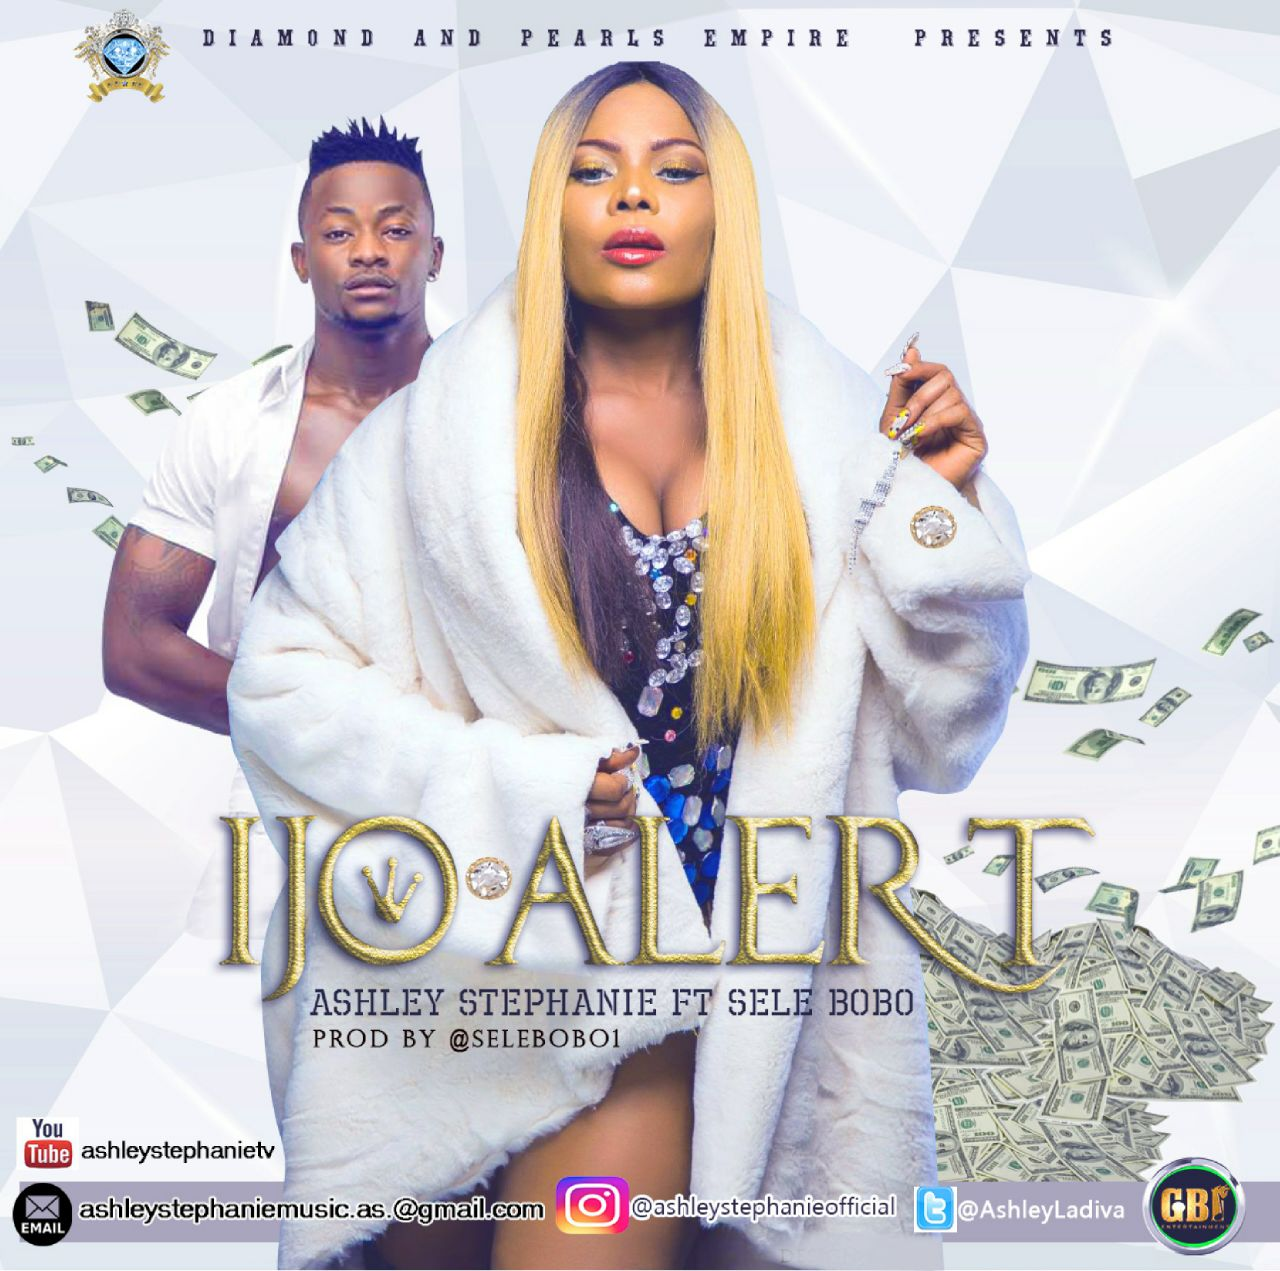 Ashley Stephanie Ft. Selebobo - Ijo Alert